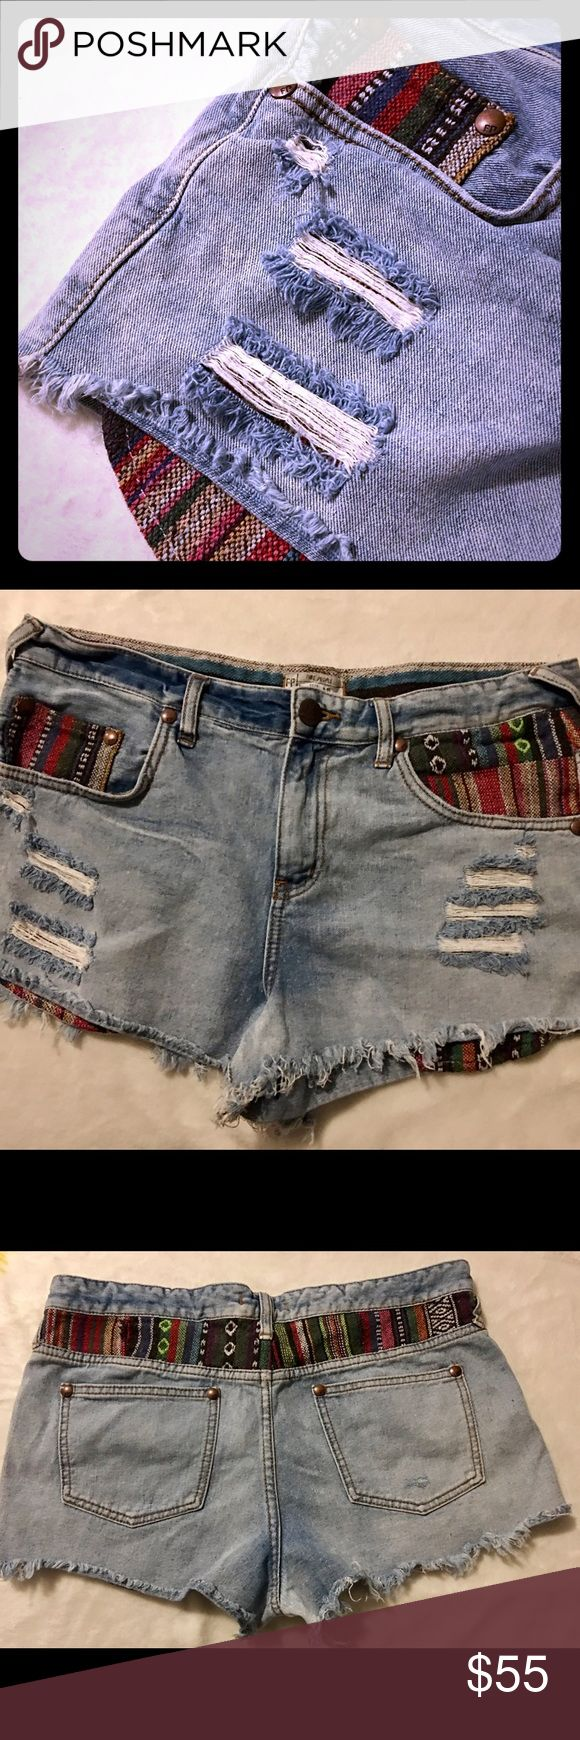 🍇FREE PEOPLE AZTEC PRINT SHORTS SZ 31🍇 aMaZiNg Free People shorts in a size 31 in awesome condition! These are a must have for this summer. A guaranteed favorite. Make an offer on a bundle for a discount! Questions, ask away. Thanks.:) *Discounted price firm:) Free People Shorts Jean Shorts